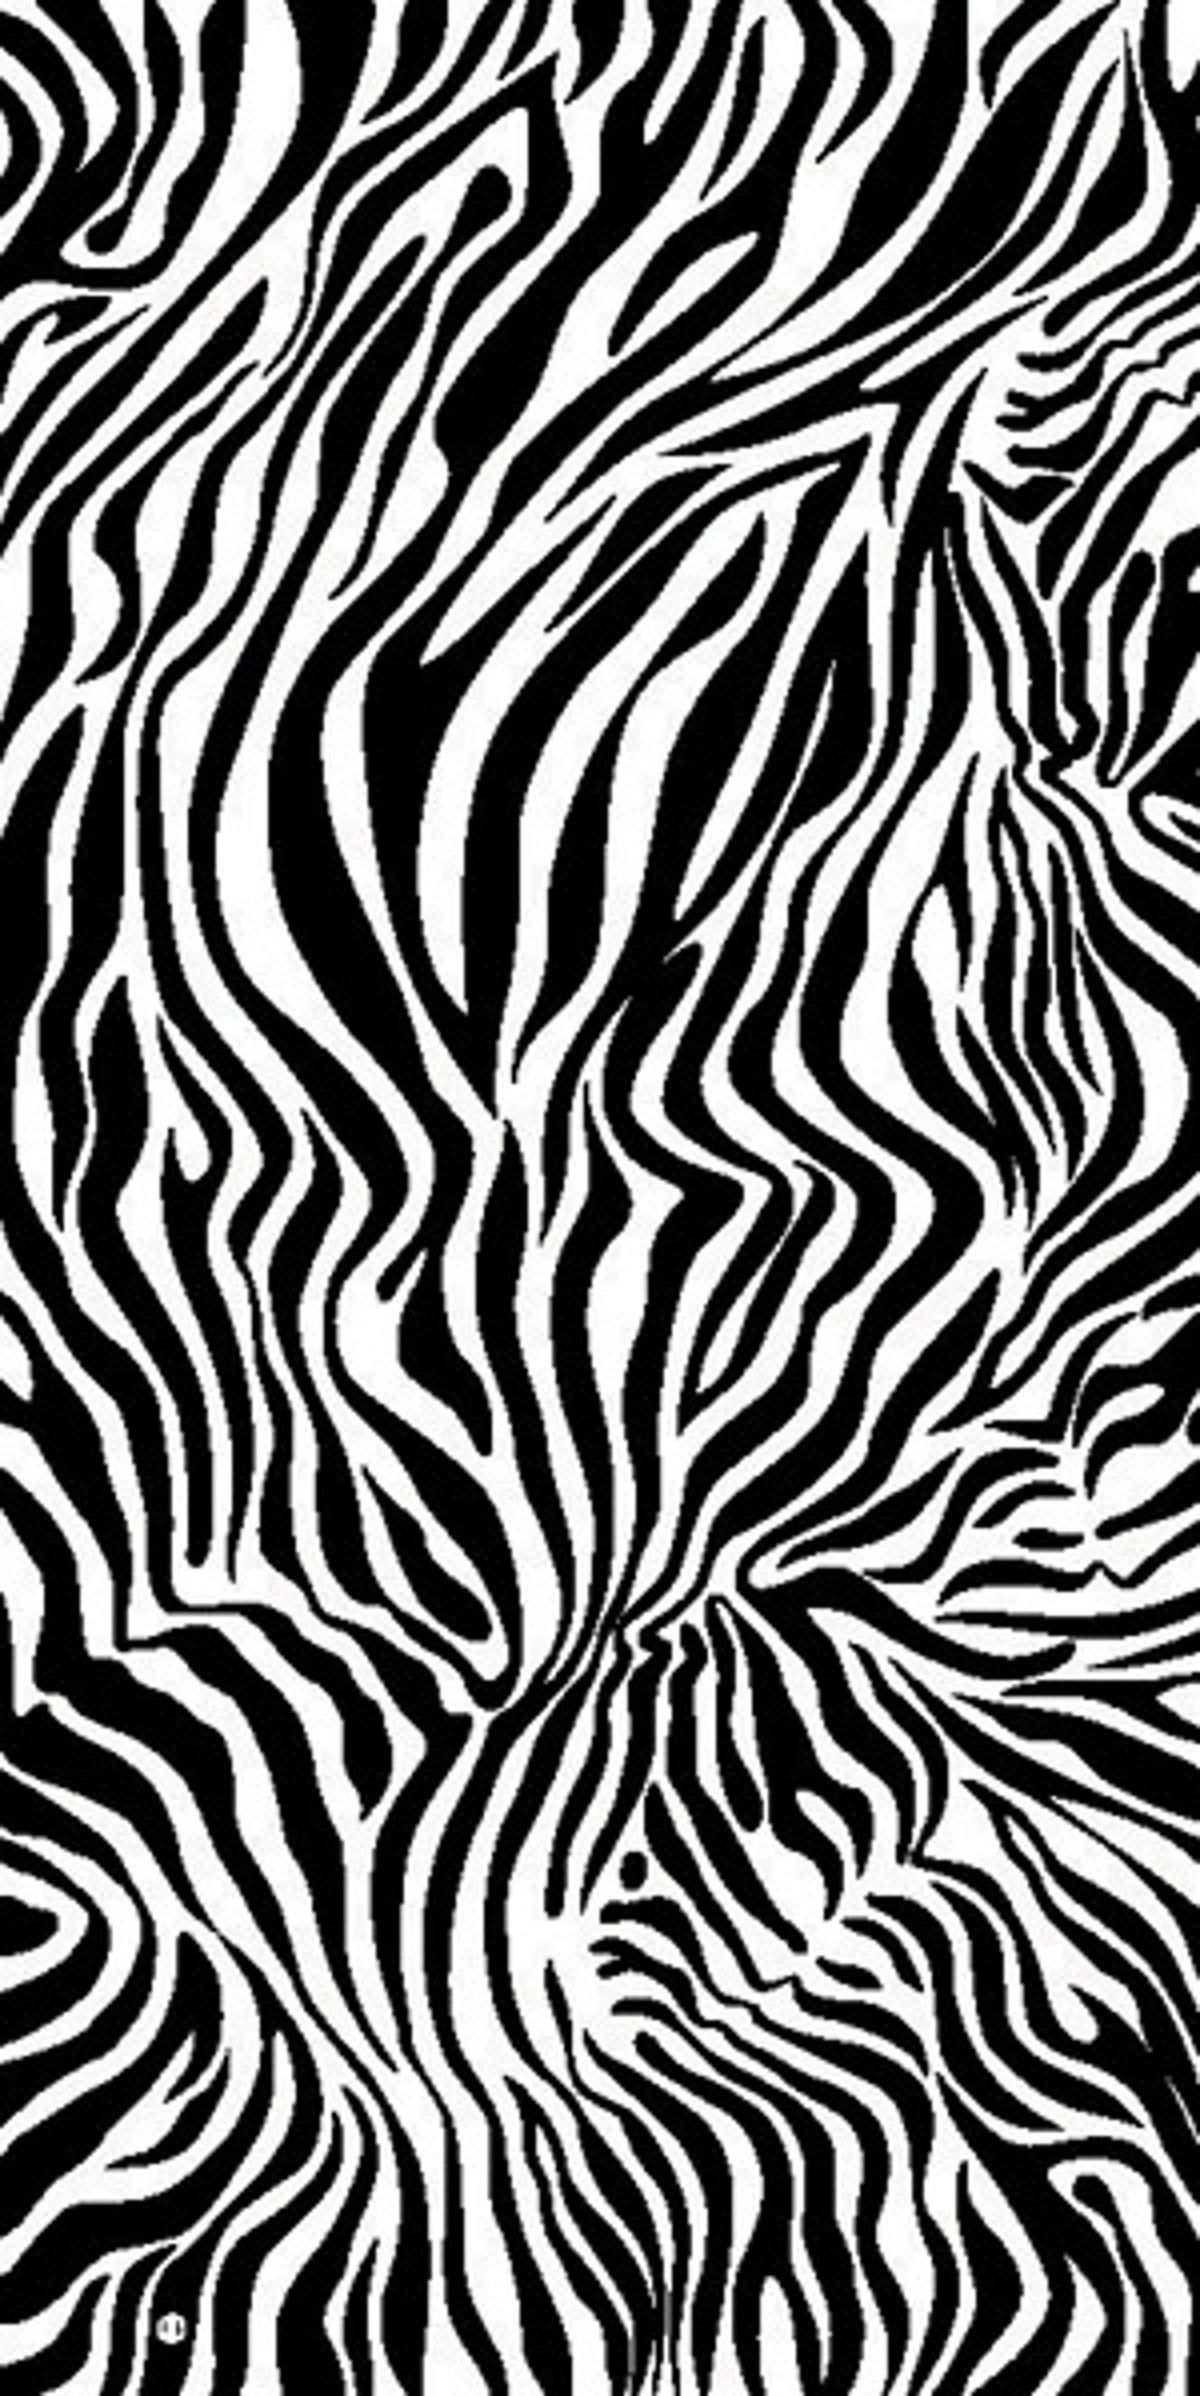 Zebra Print Beach Towel Abstract Wallpaper Animal Print Wallpaper Art Wallpaper